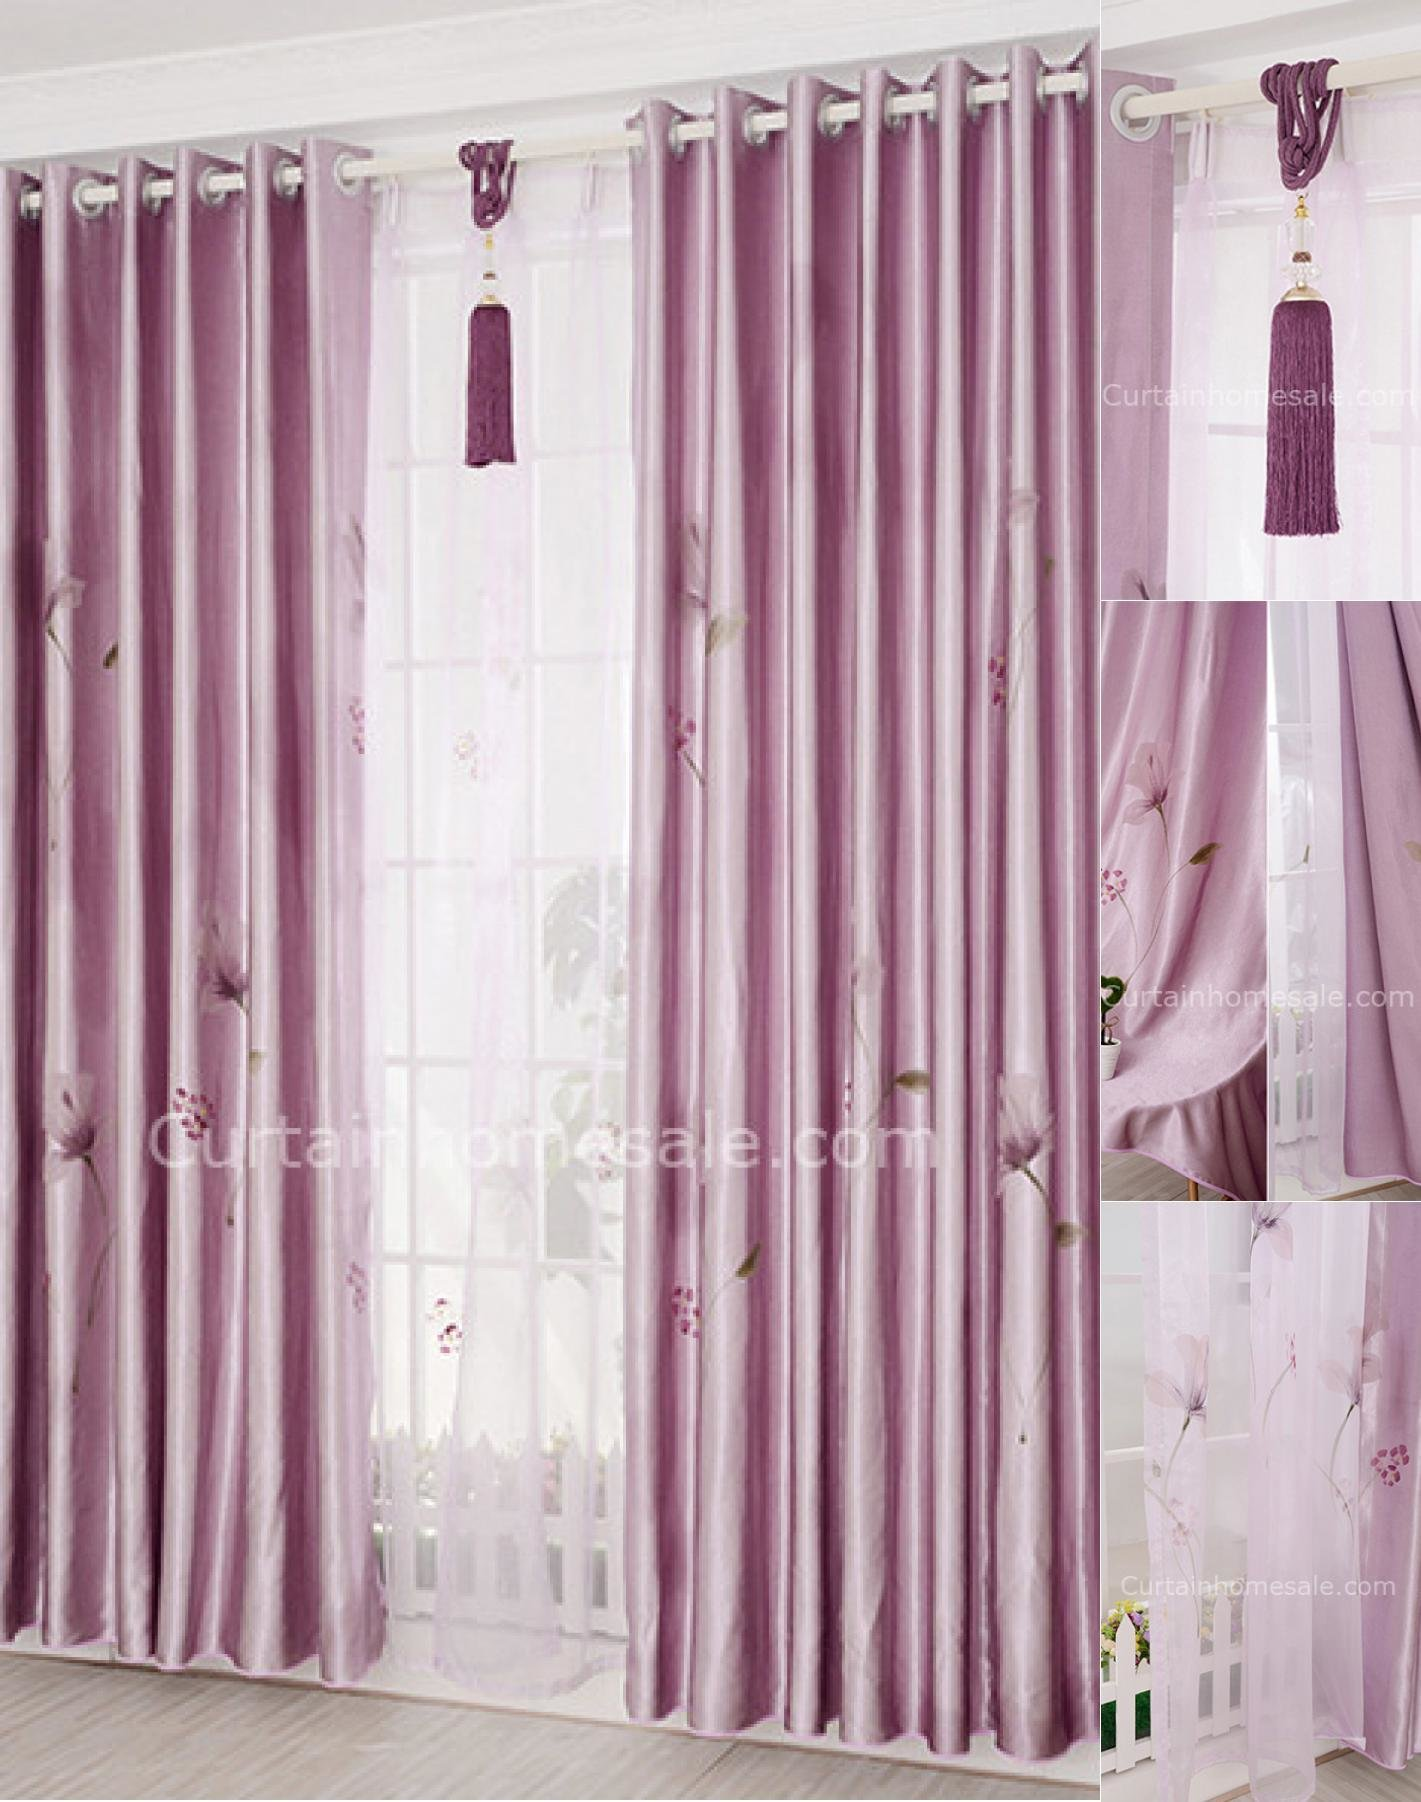 Best Cheap Ready Made Curtains Uk In Light Purple With Floral Printing For Bedroom With Pictures